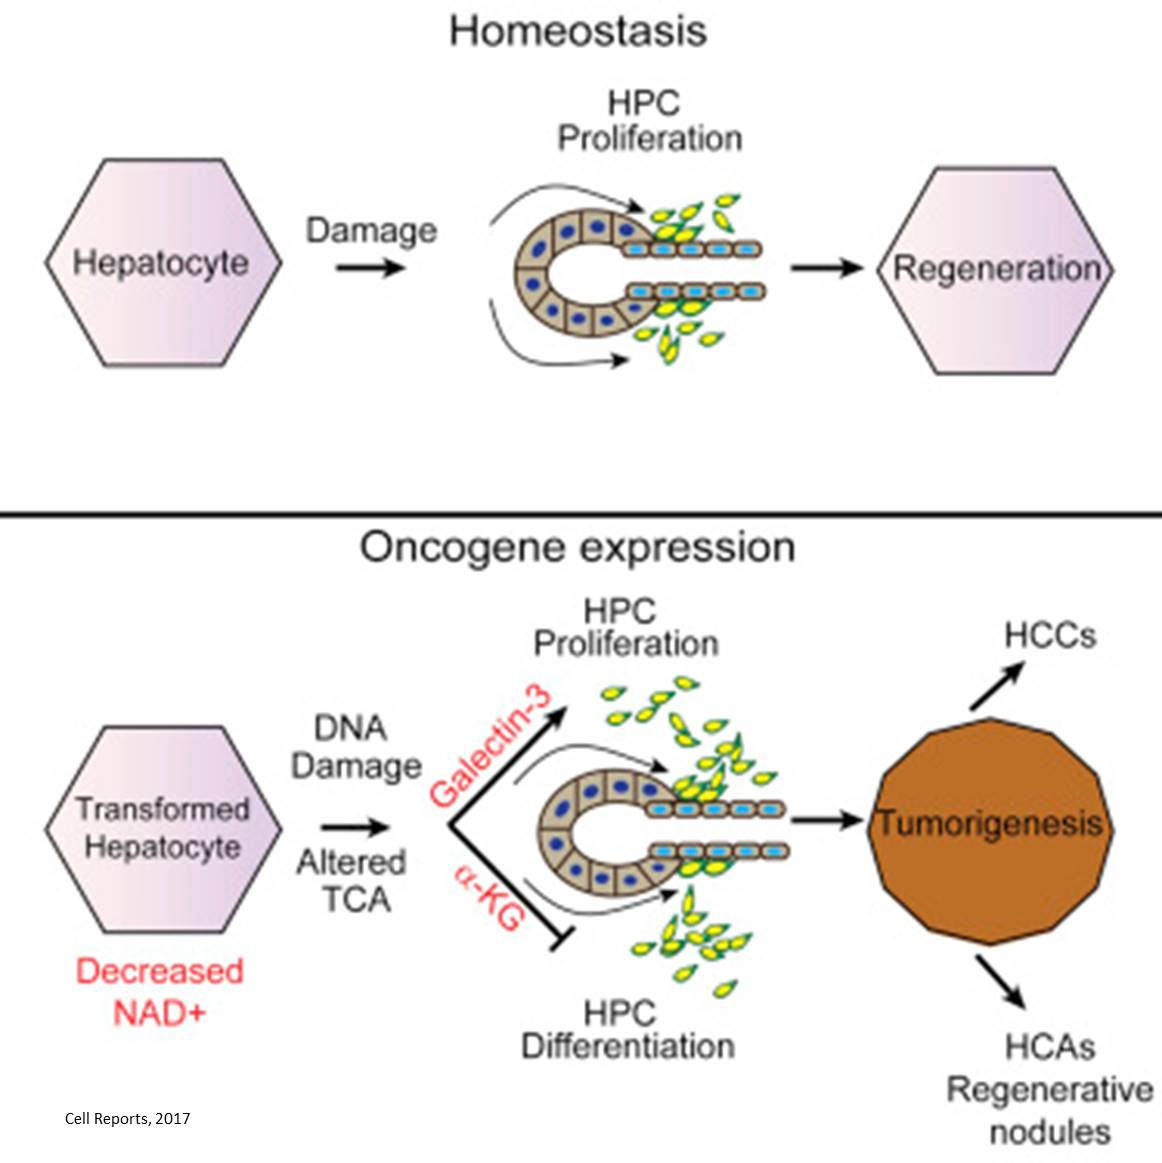 Liver progenitor cells are involved in the development of hepatic tumors